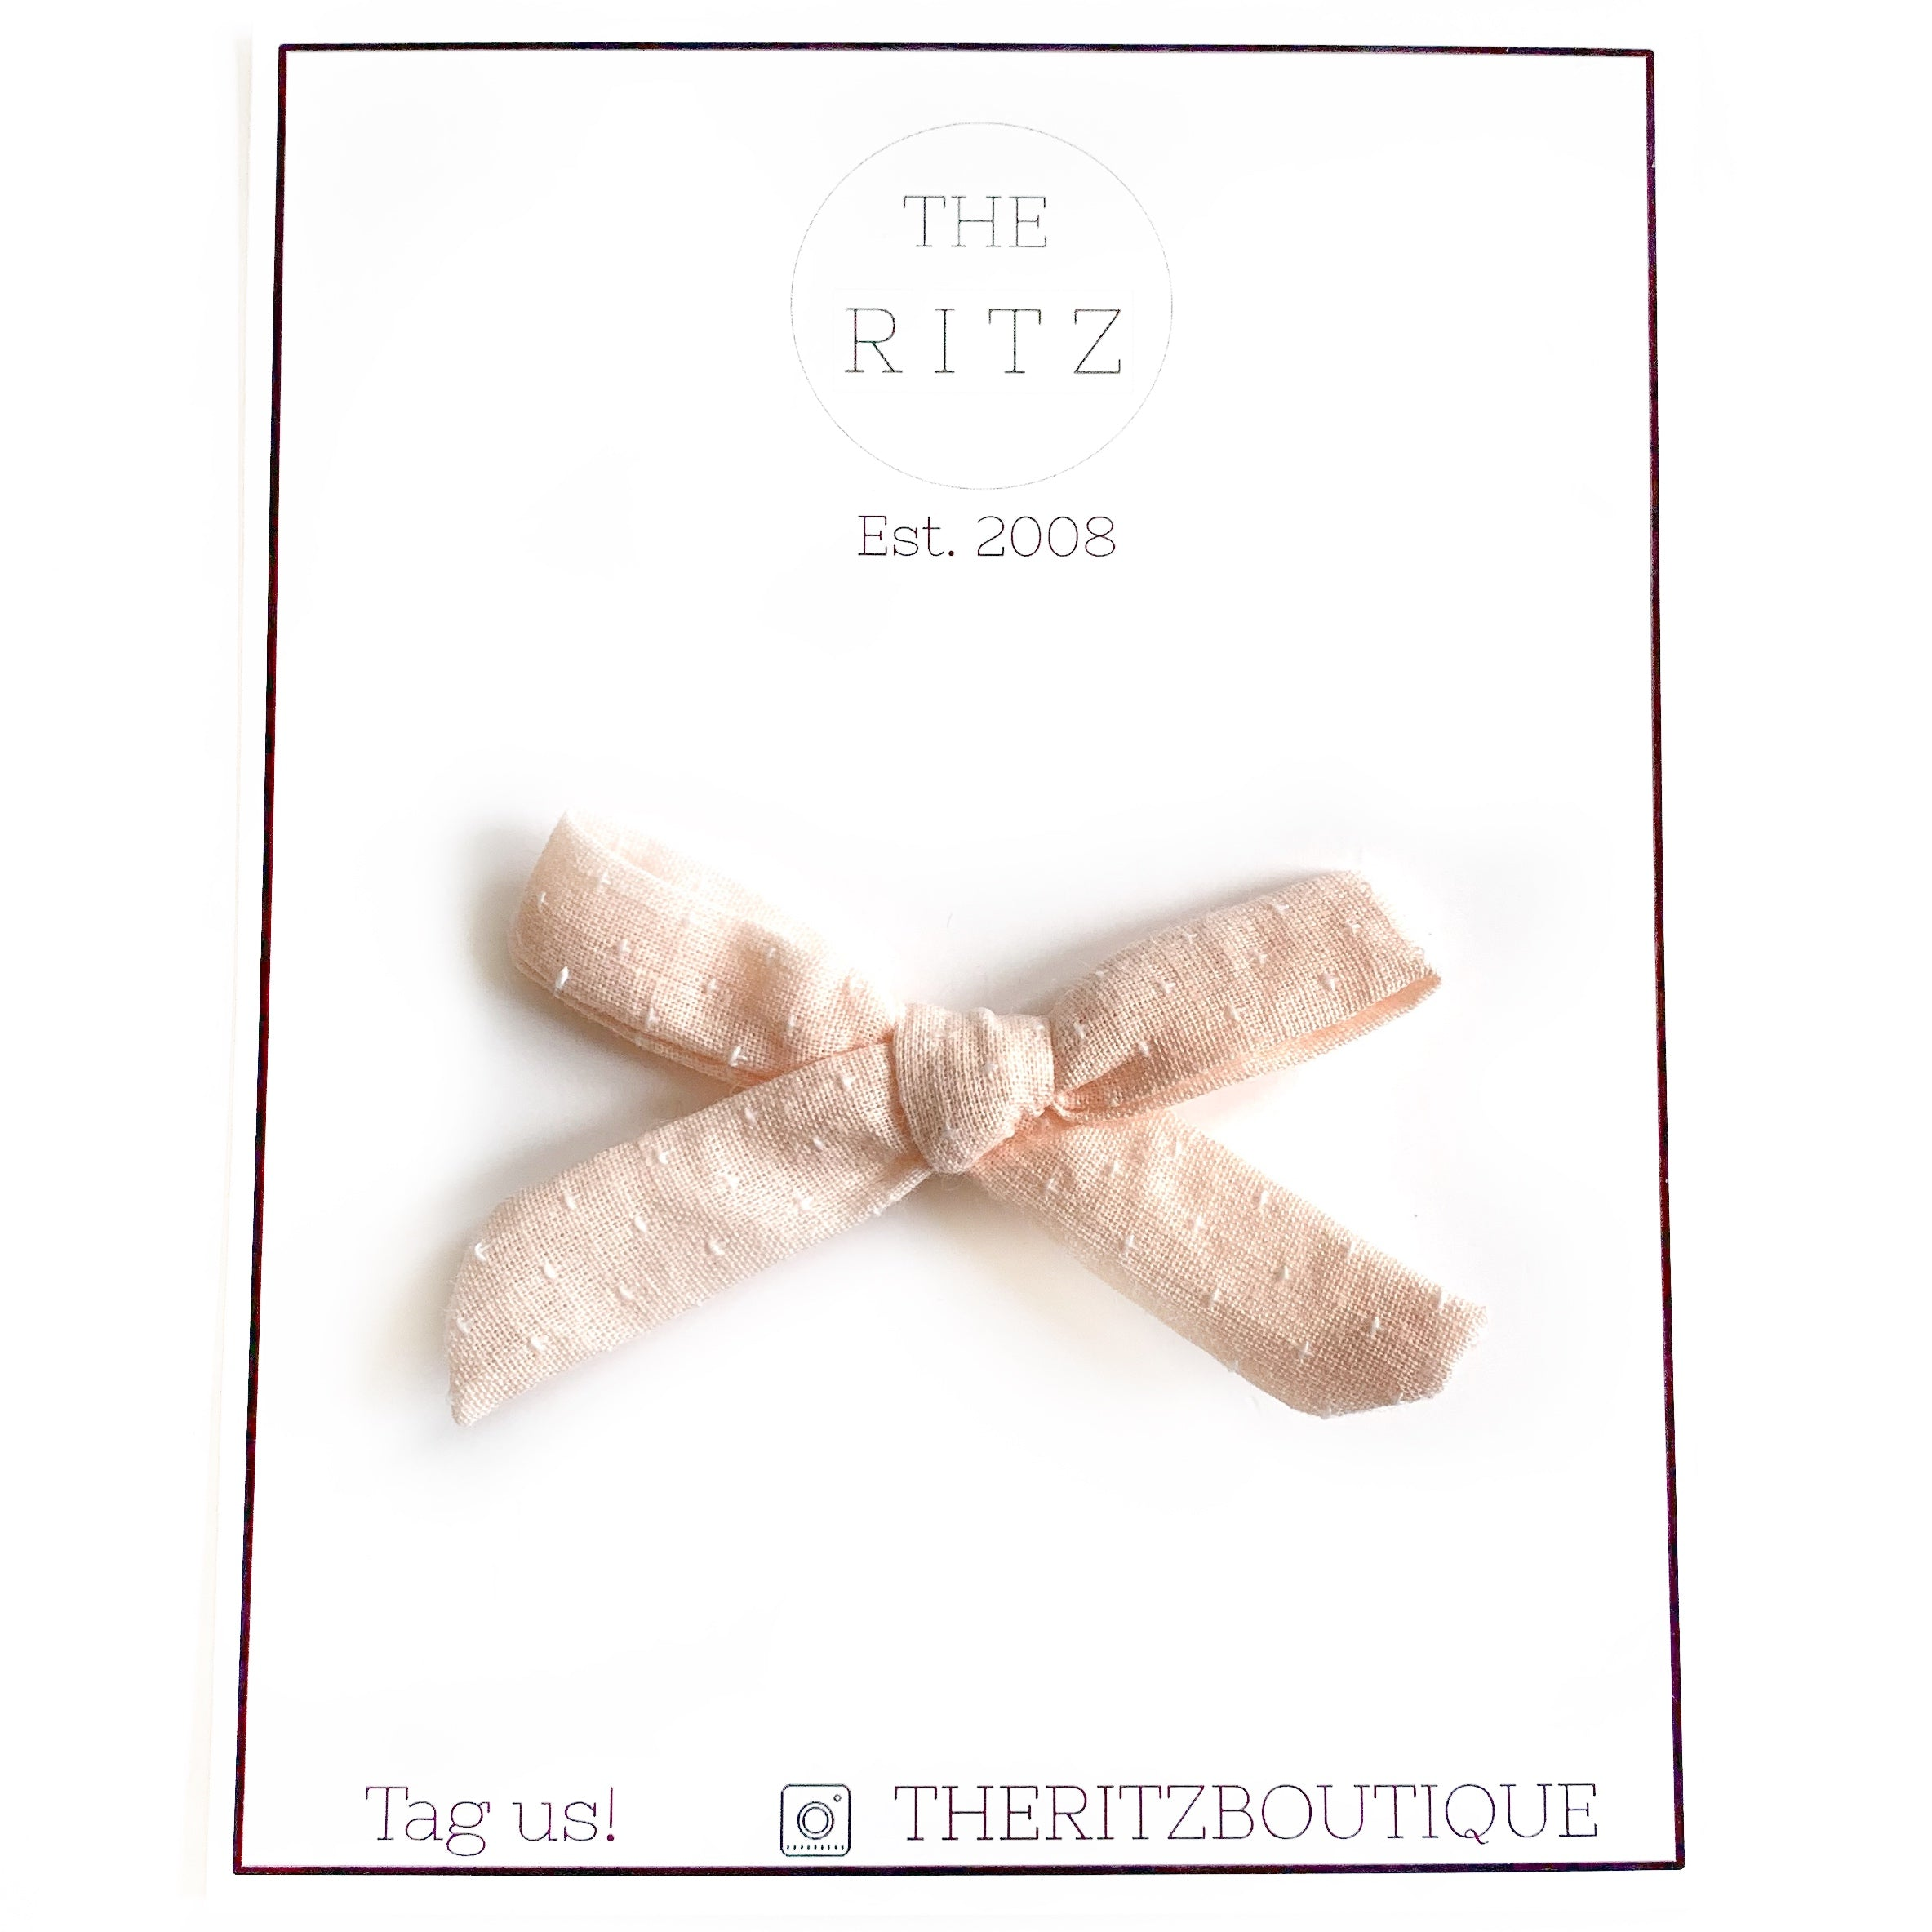 Pale Peach Mini Swiss Cross Linen Bow